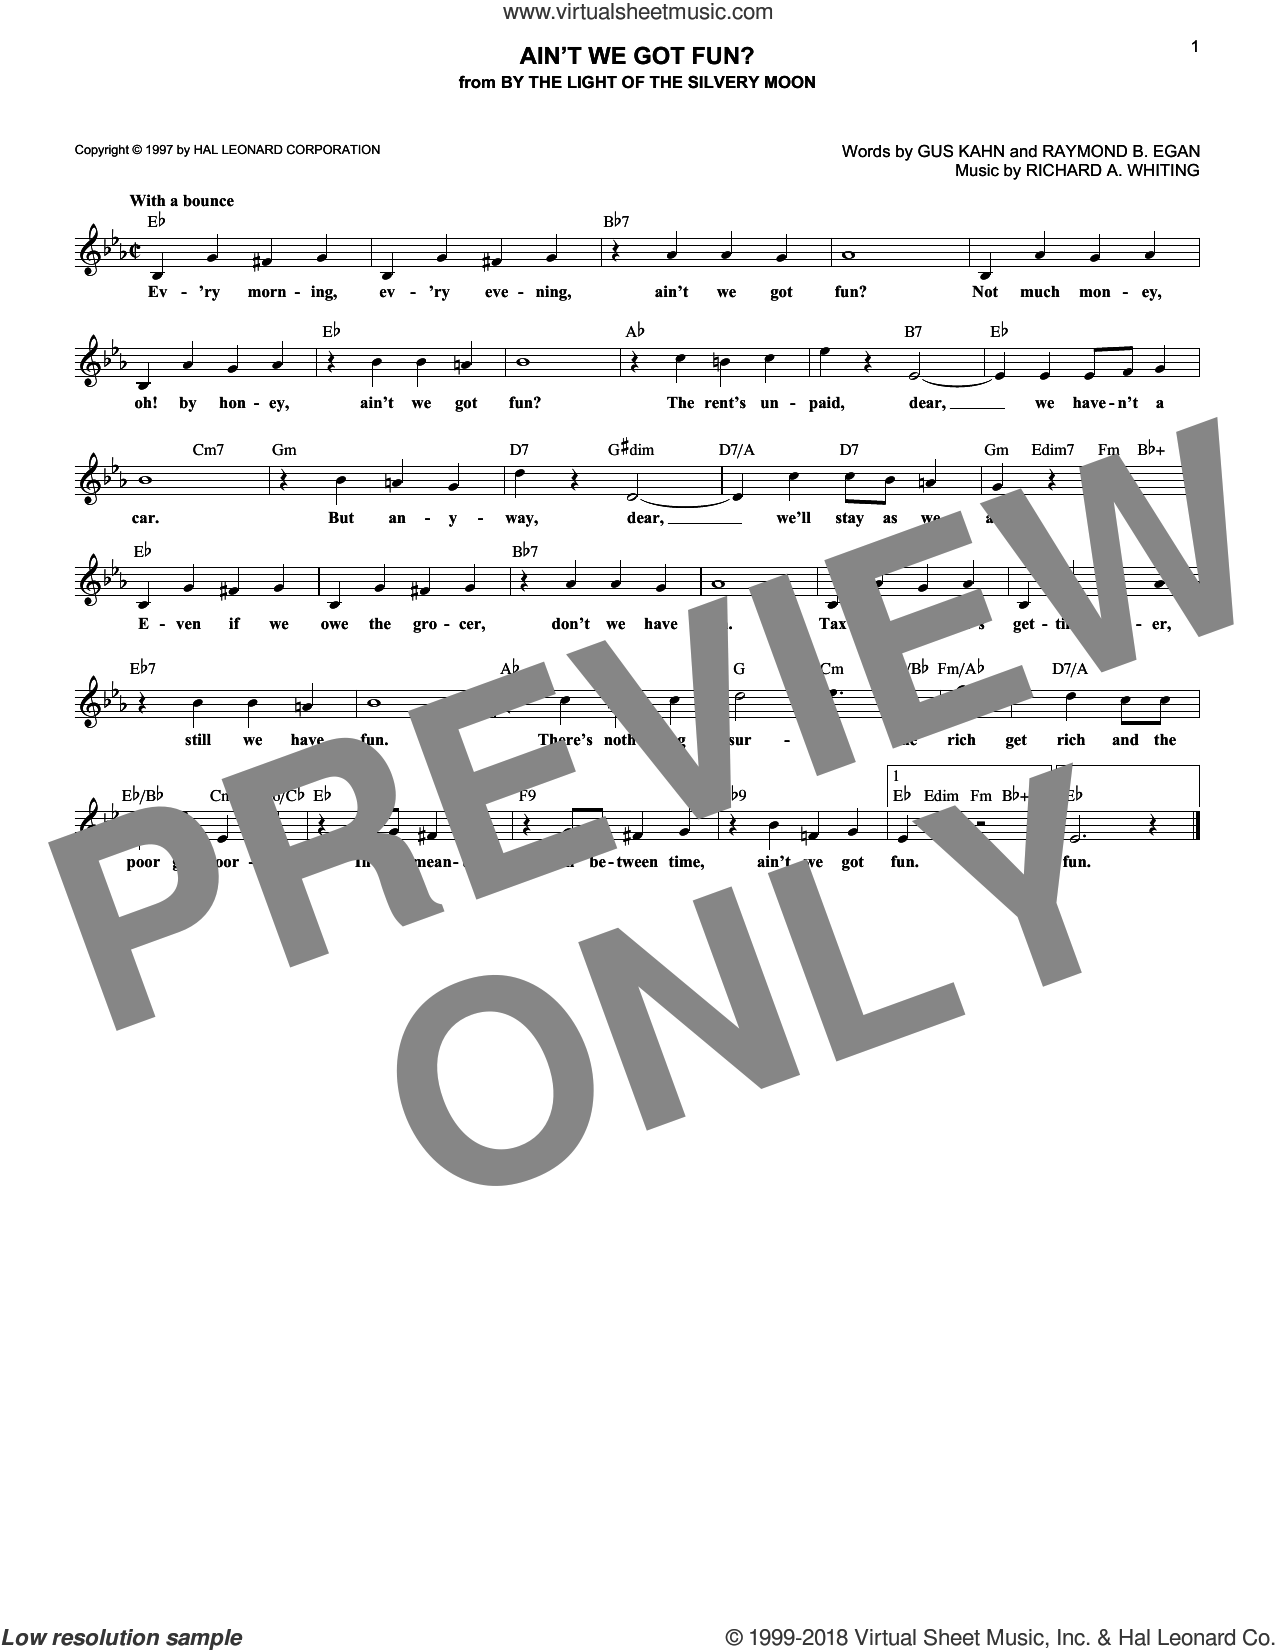 Ain't We Got Fun? sheet music for voice and other instruments (fake book) by Gus Kahn, Ruth Roye, Van and Schenck, Raymond B. Egan and Richard A. Whiting, intermediate skill level